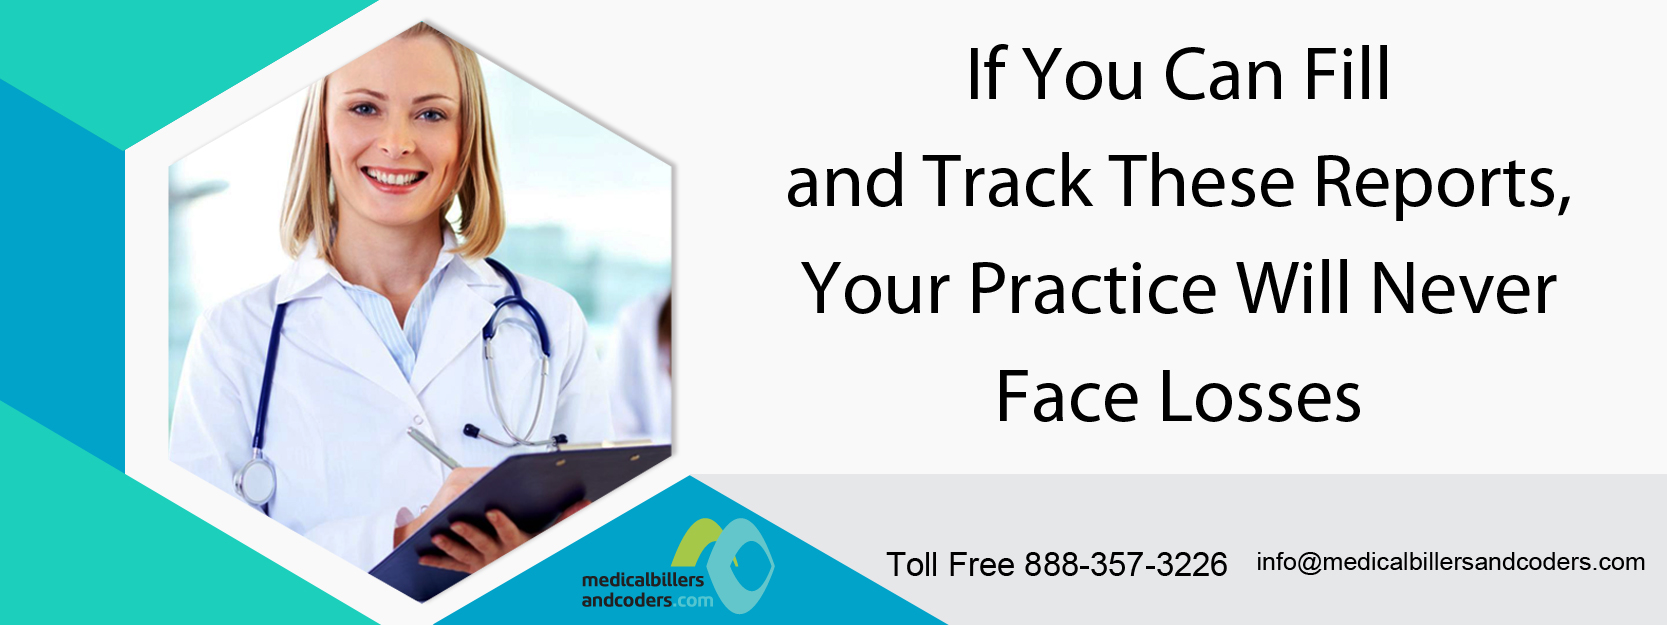 If You Can Fill and Track These Reports, Your Practice Will Never Face Losses